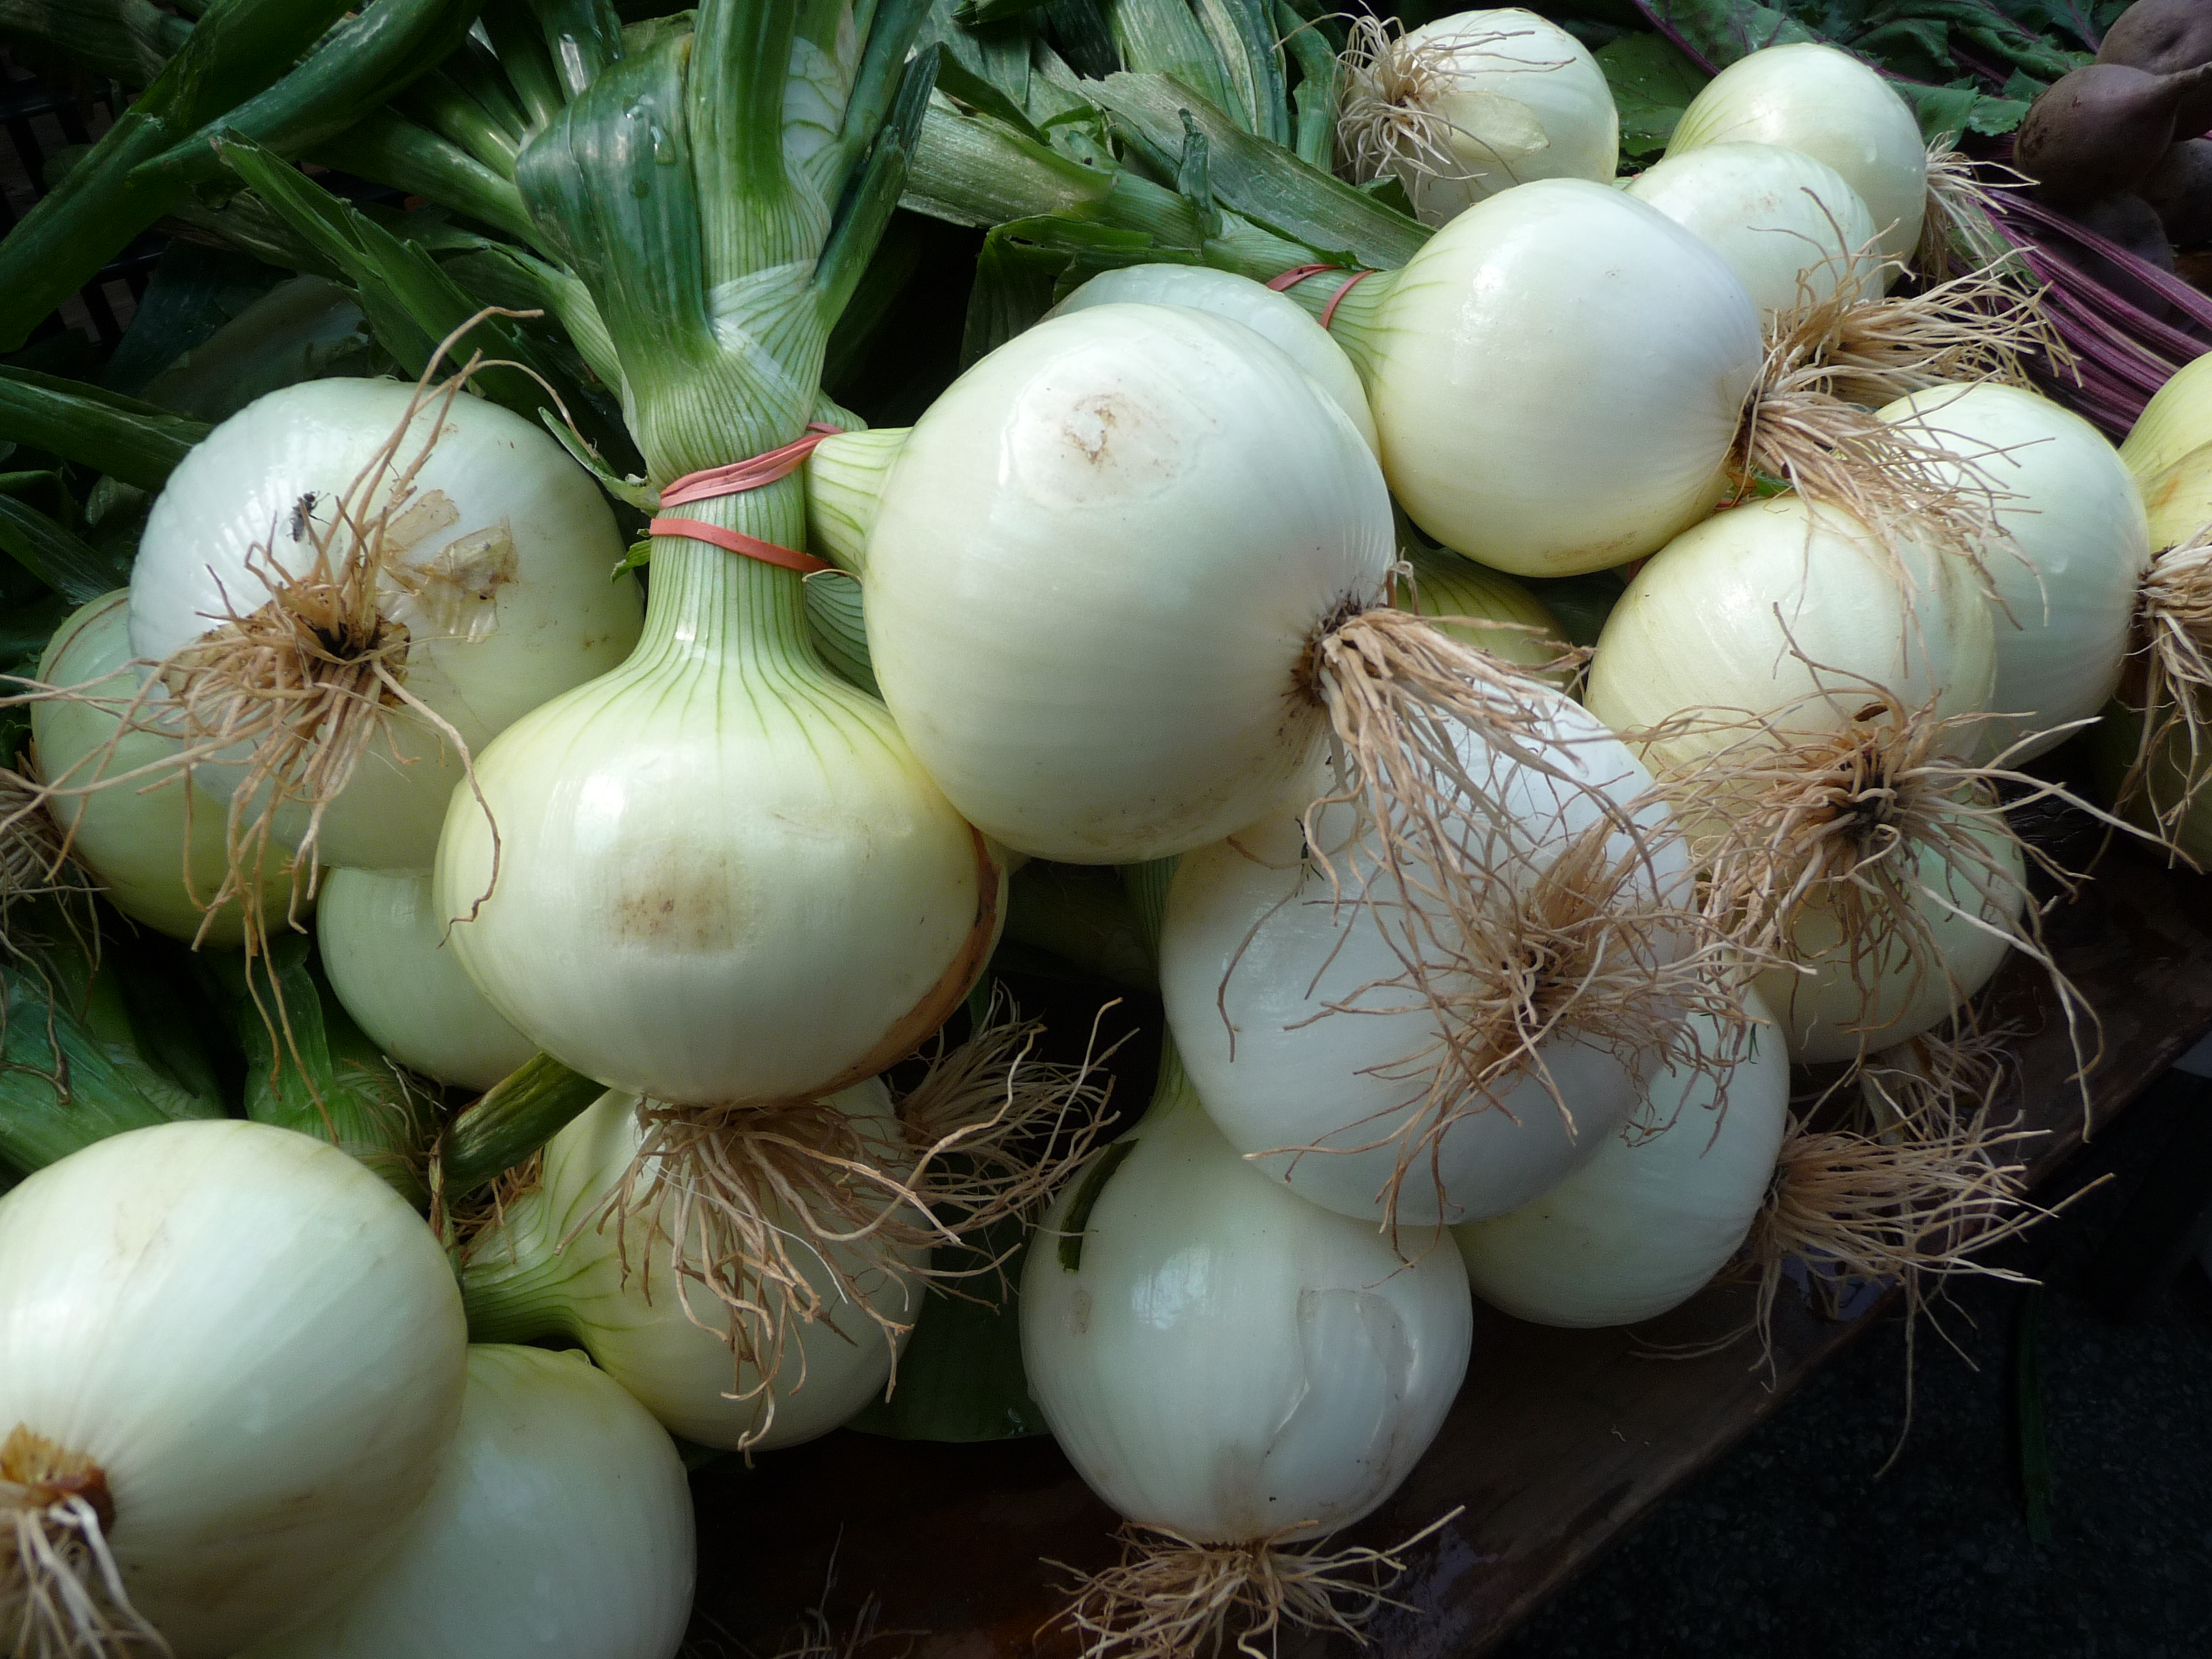 Five flavors kitchen sotto voce how the onion can improve your my uncle ilo short for italo always said that one should eat onions and garlic to improve ones voice i of course did not believe him one bit ccuart Gallery